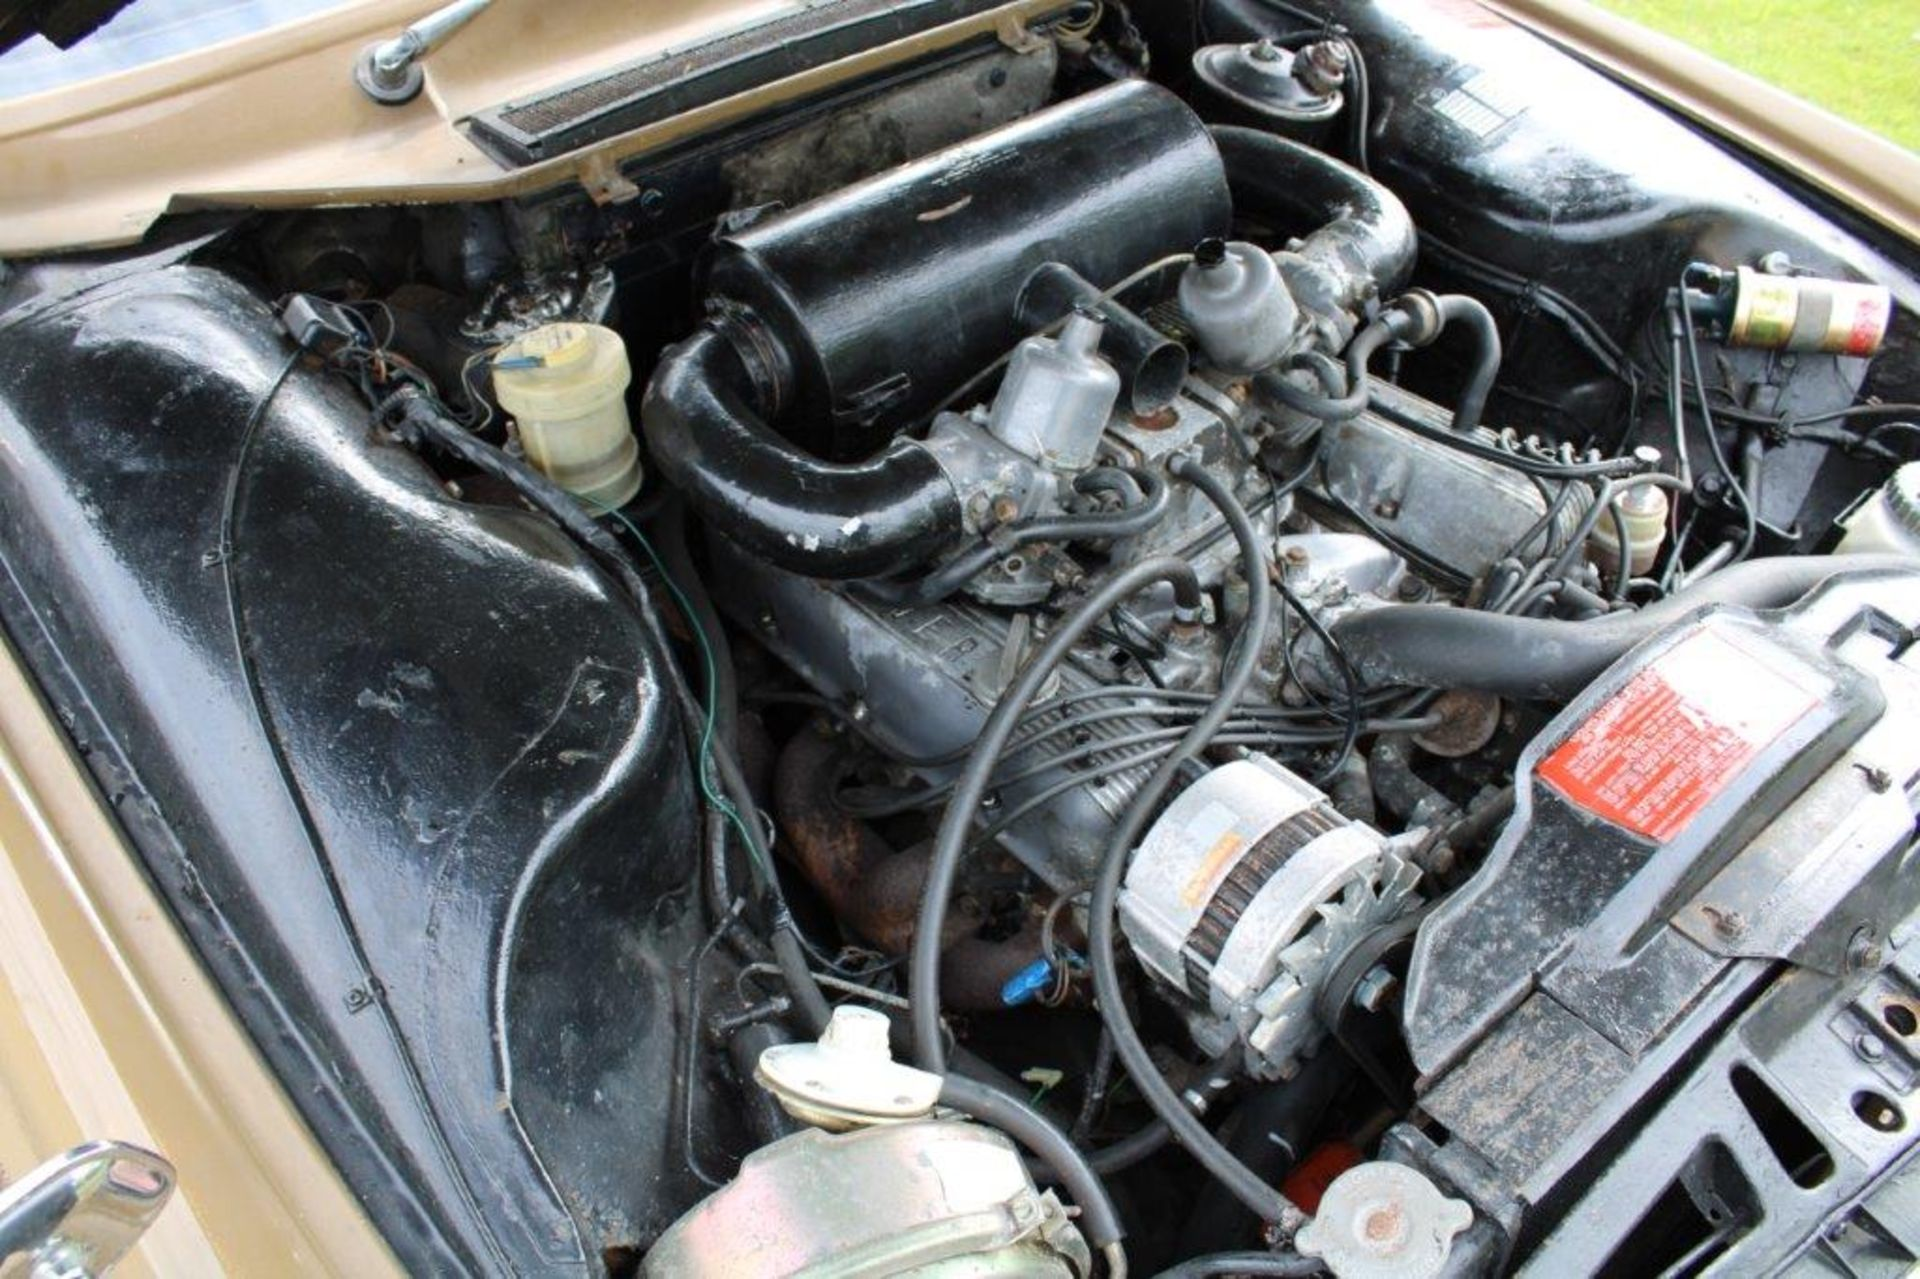 1970 Rover P6 3500 S 1 of 6 development cars - Image 21 of 21